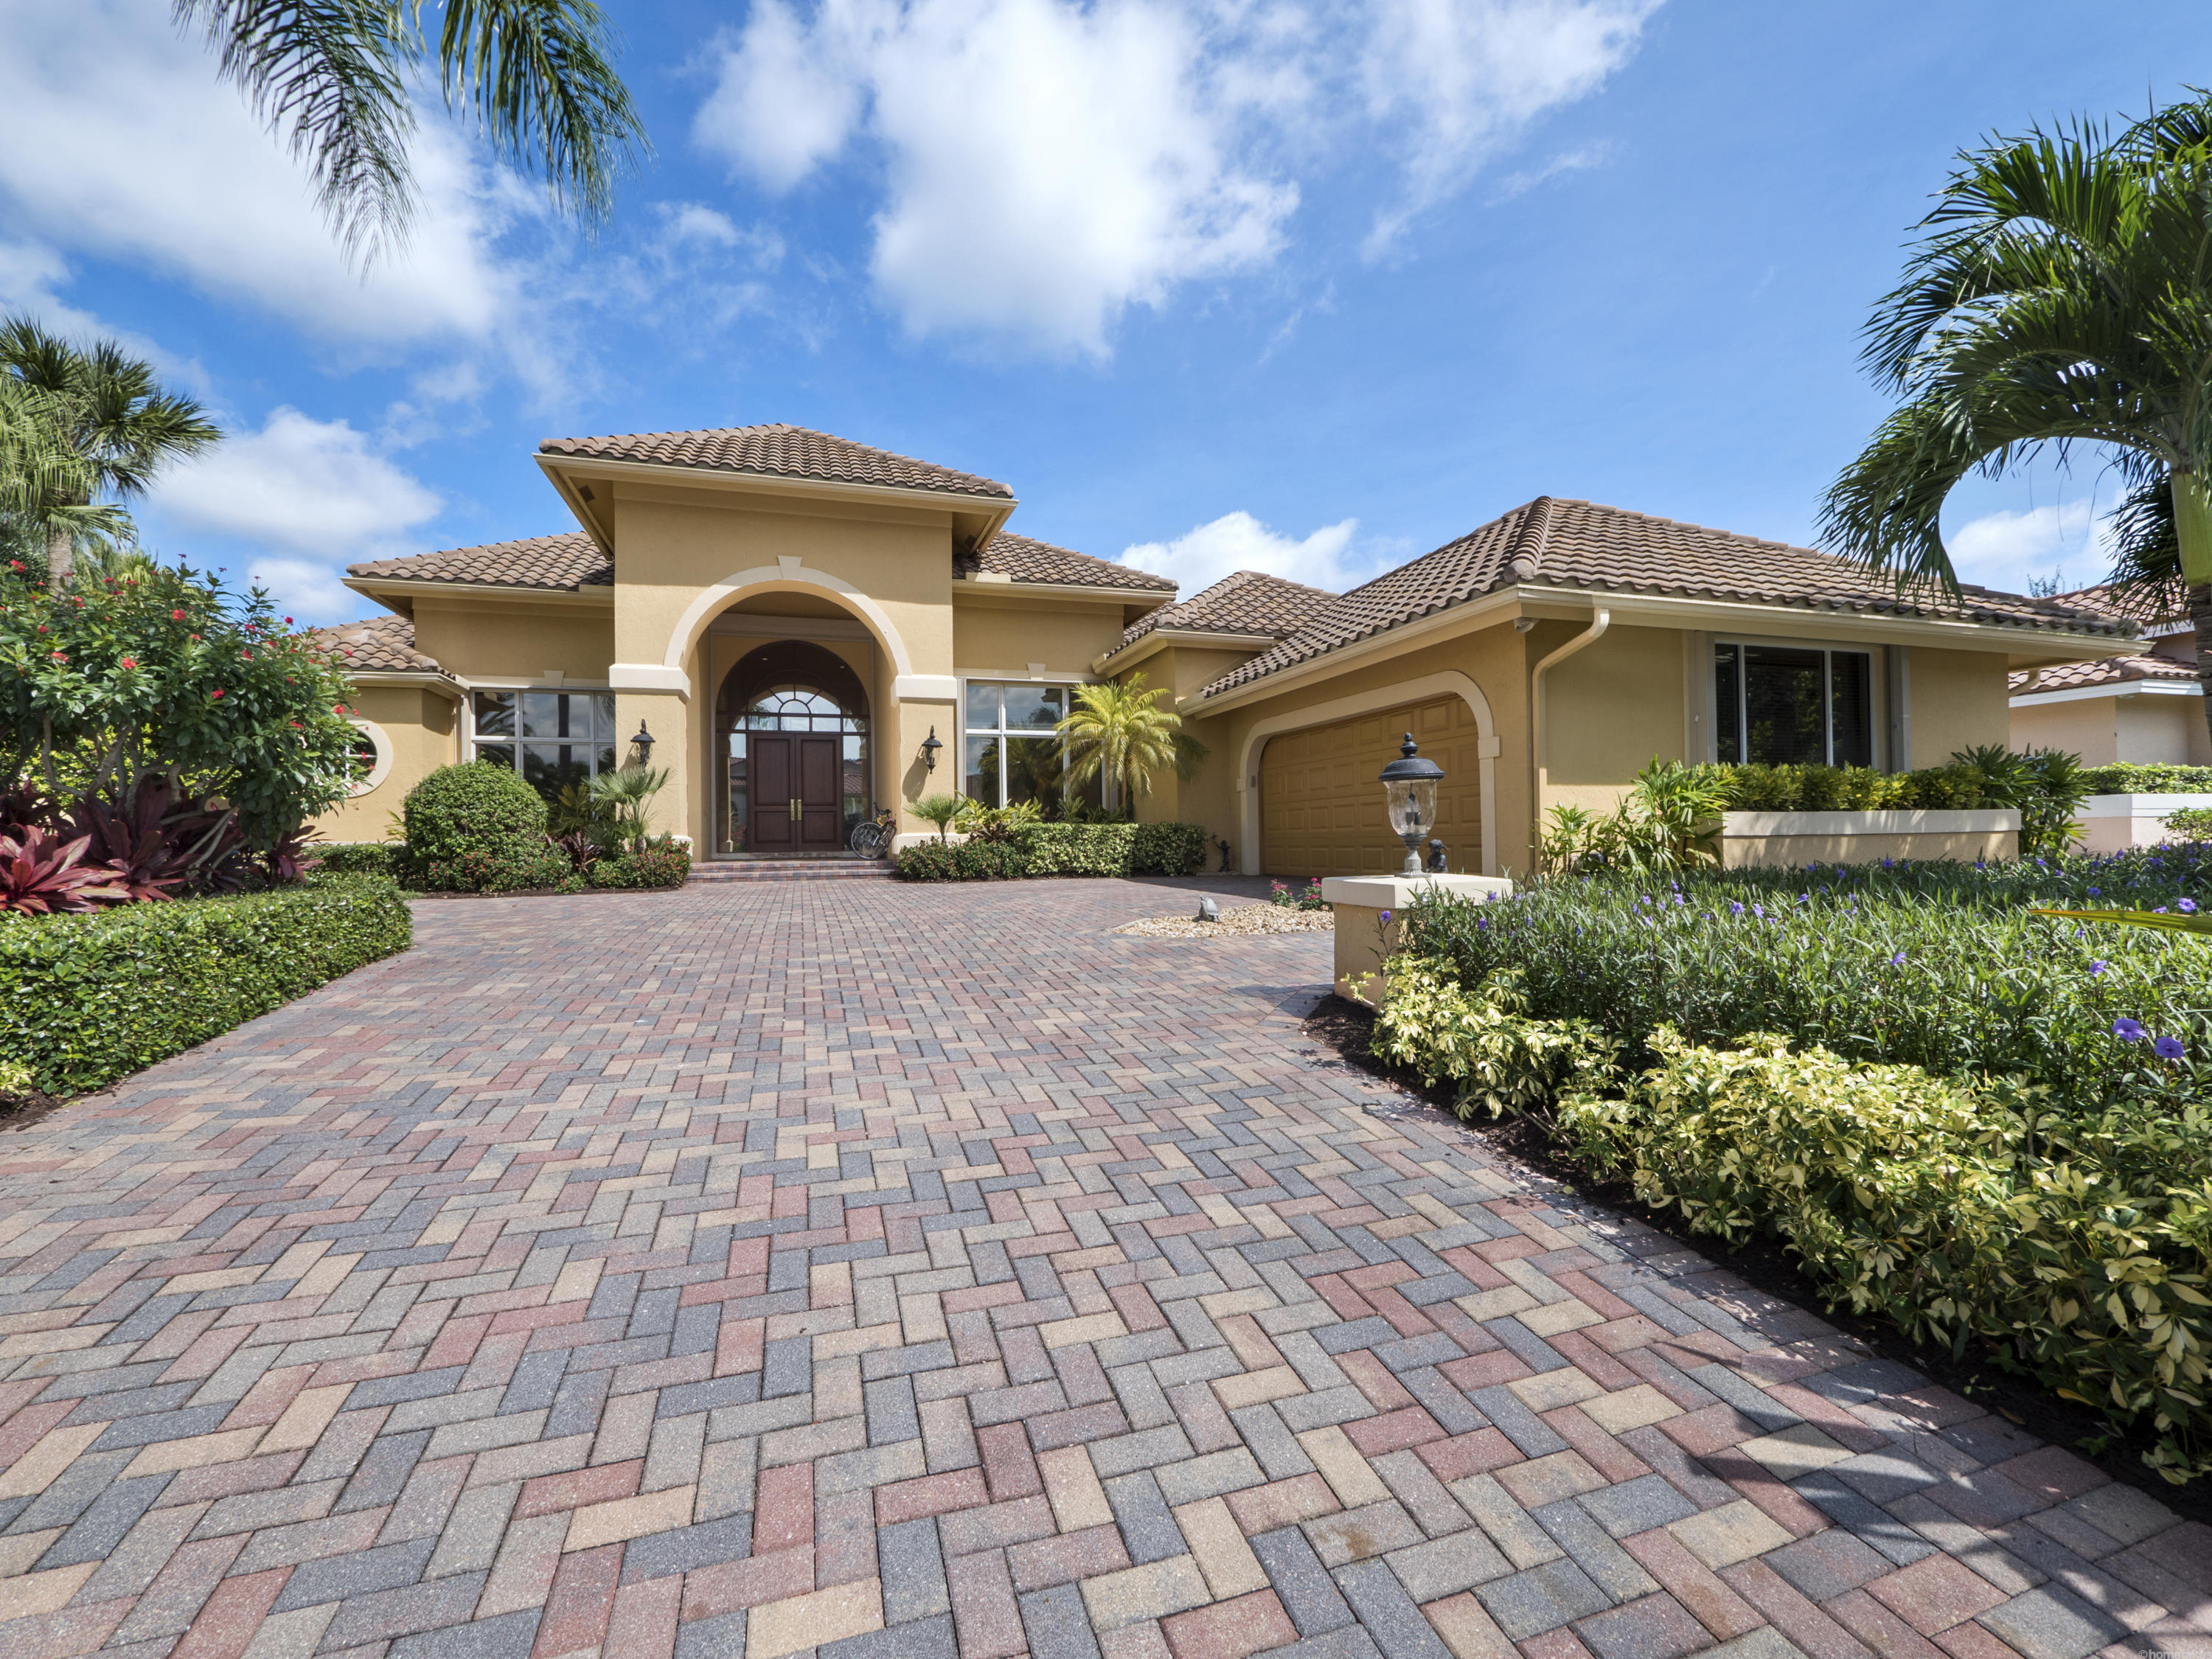 3081 Burgundy Drive, Palm Beach Gardens, Florida 33410, 5 Bedrooms Bedrooms, ,6.1 BathroomsBathrooms,Single Family,For Sale,FRENCHMAN'S CREEK BEACH & COUNTRY CLUB,Burgundy,RX-10499590